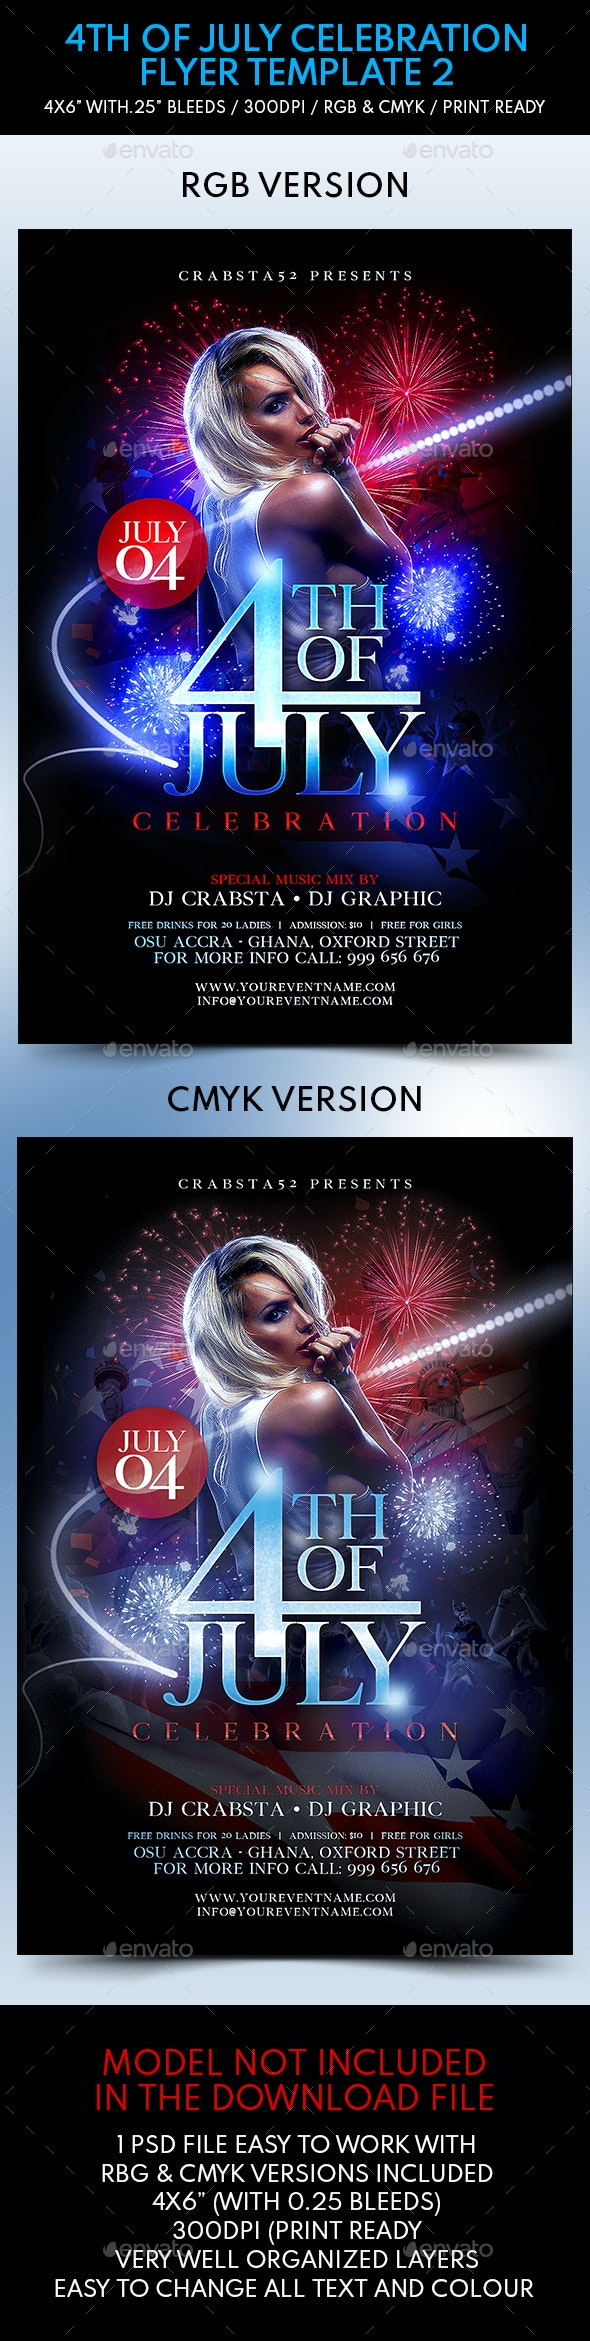 4th of July Celebration Flyer Template 2 - Flyers Print Templates